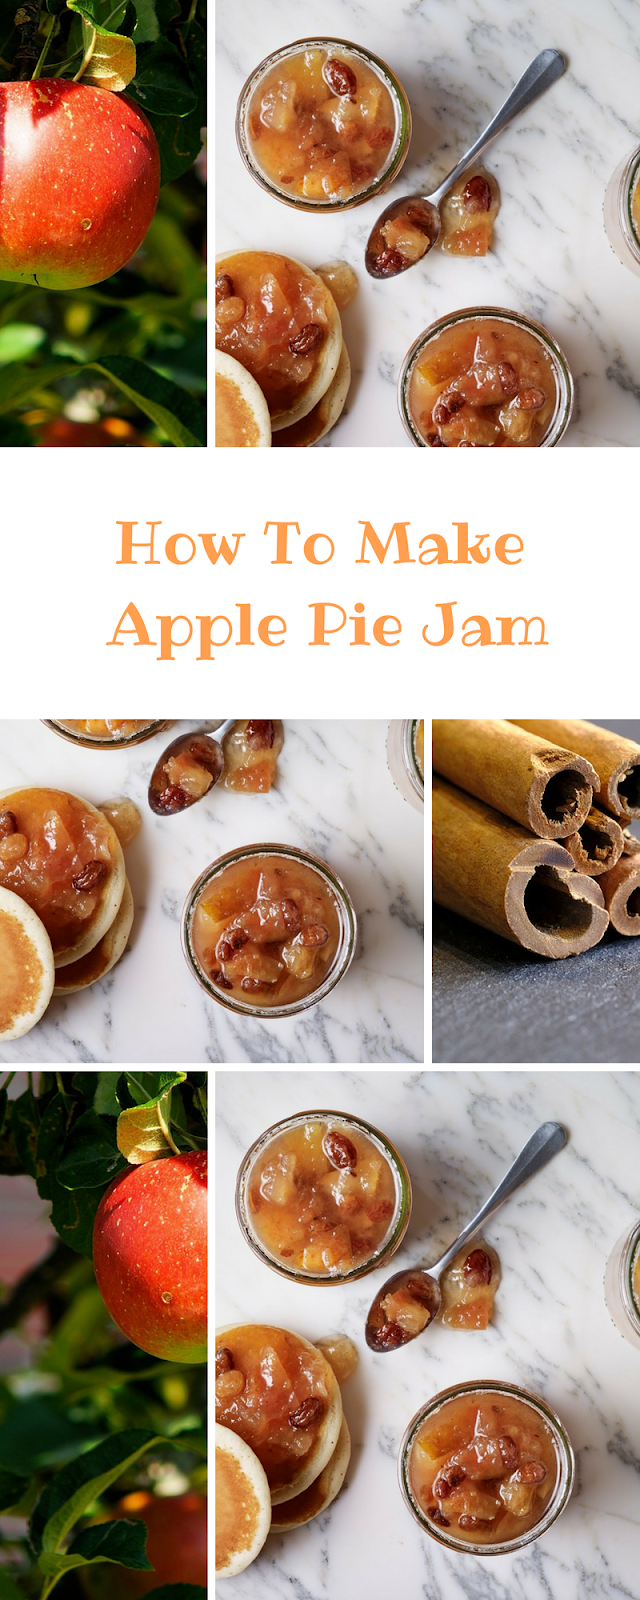 How To Make Apple Pie Jam